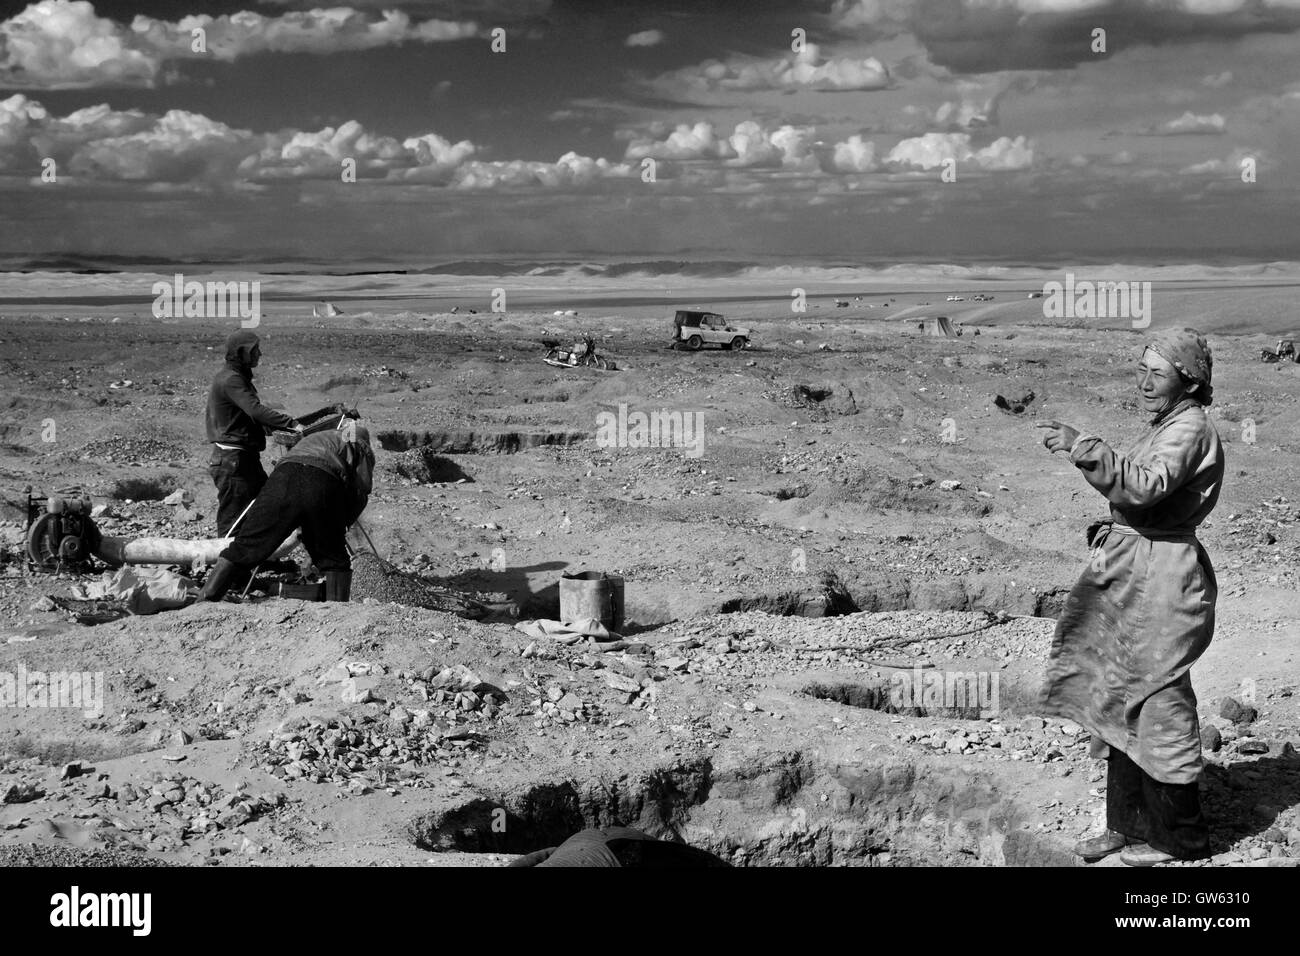 Gold miners in the Altai region - Stock Image